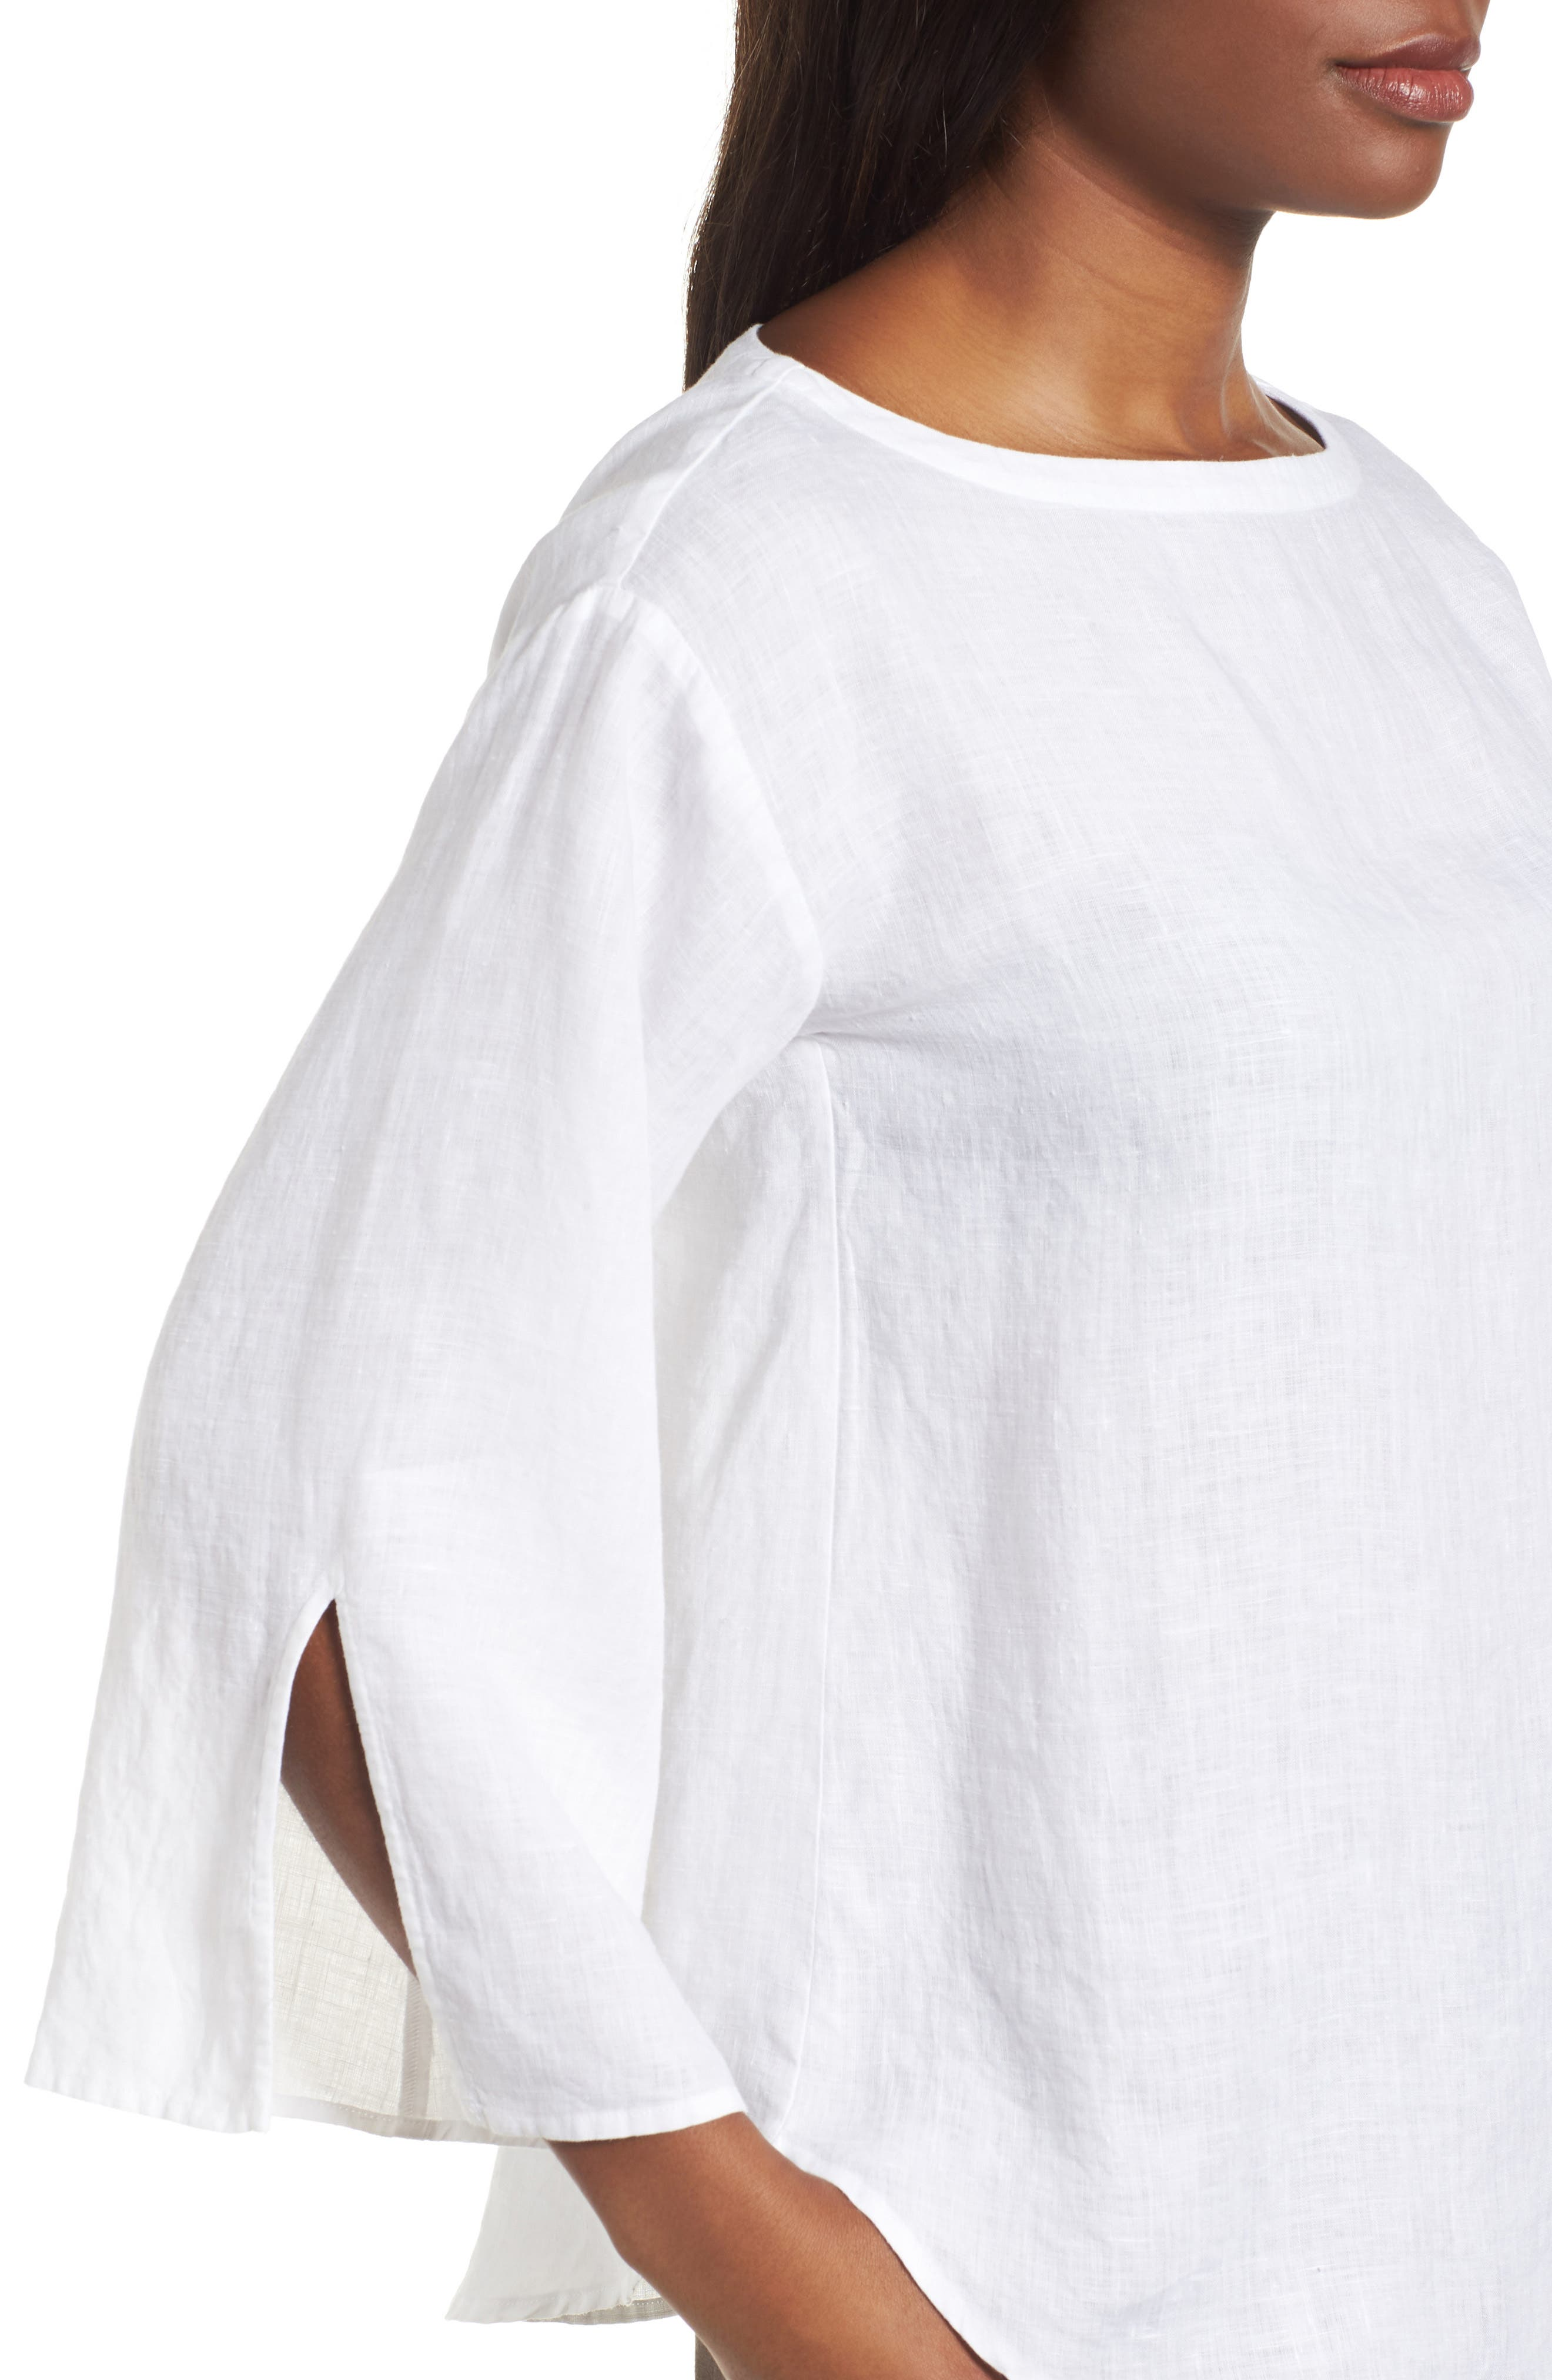 Woven Organic Linen Top,                             Alternate thumbnail 4, color,                             100